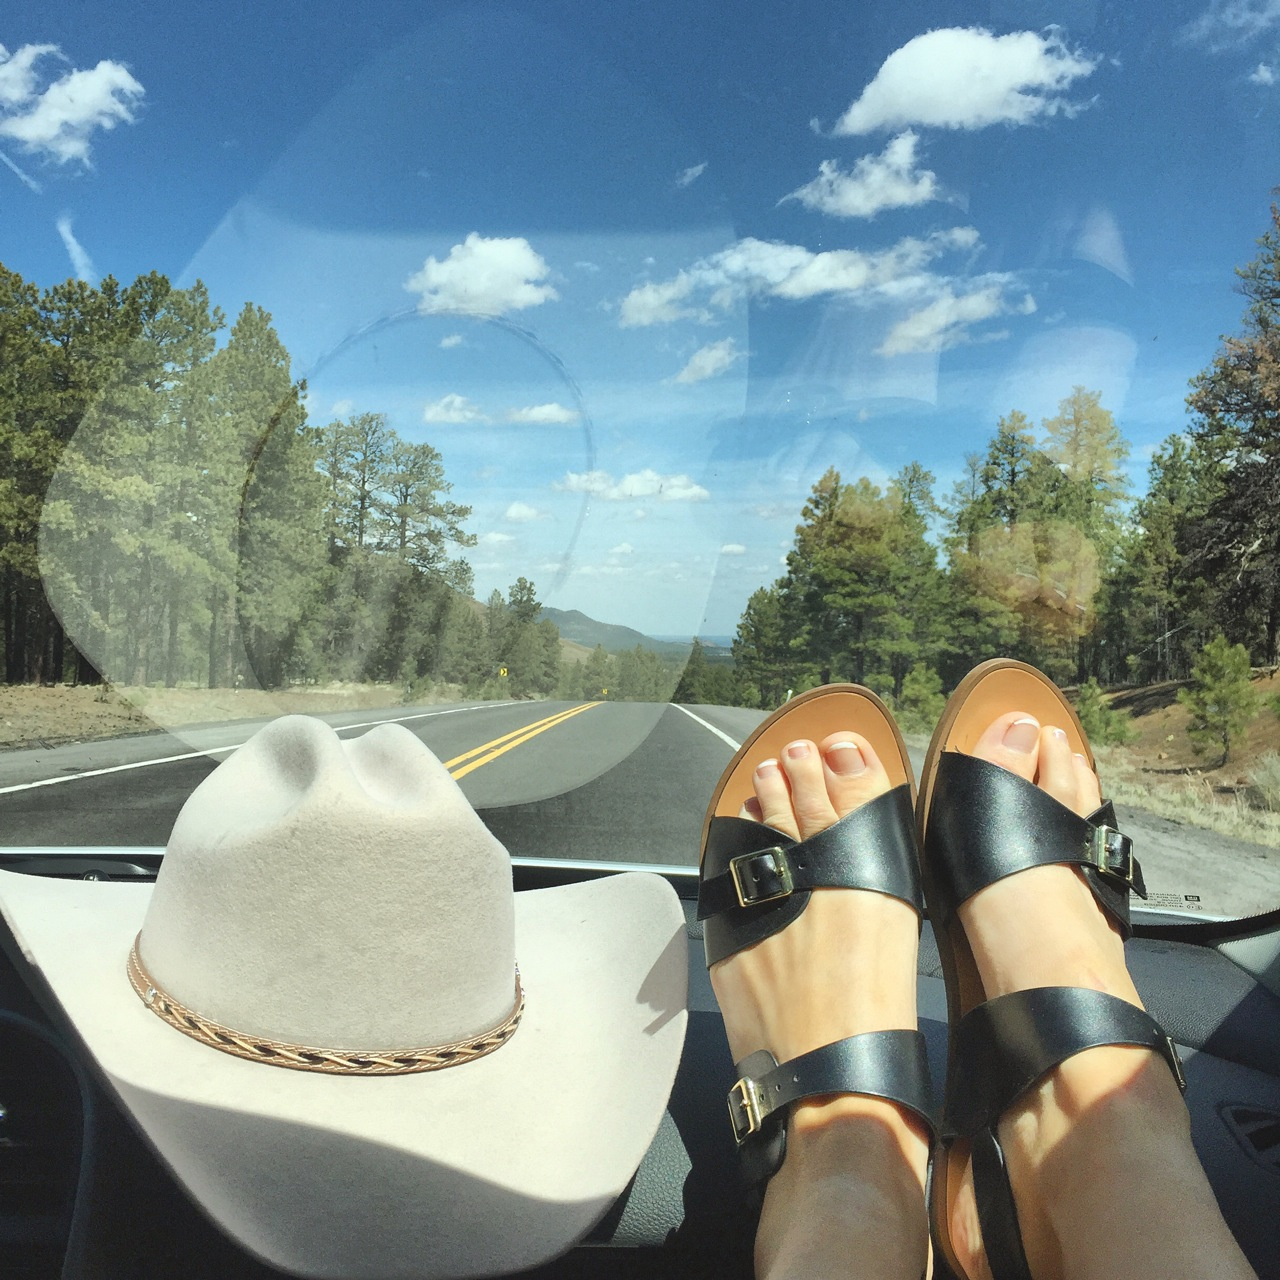 a935ea7e170a8 The 7 Best Shoes for Travel